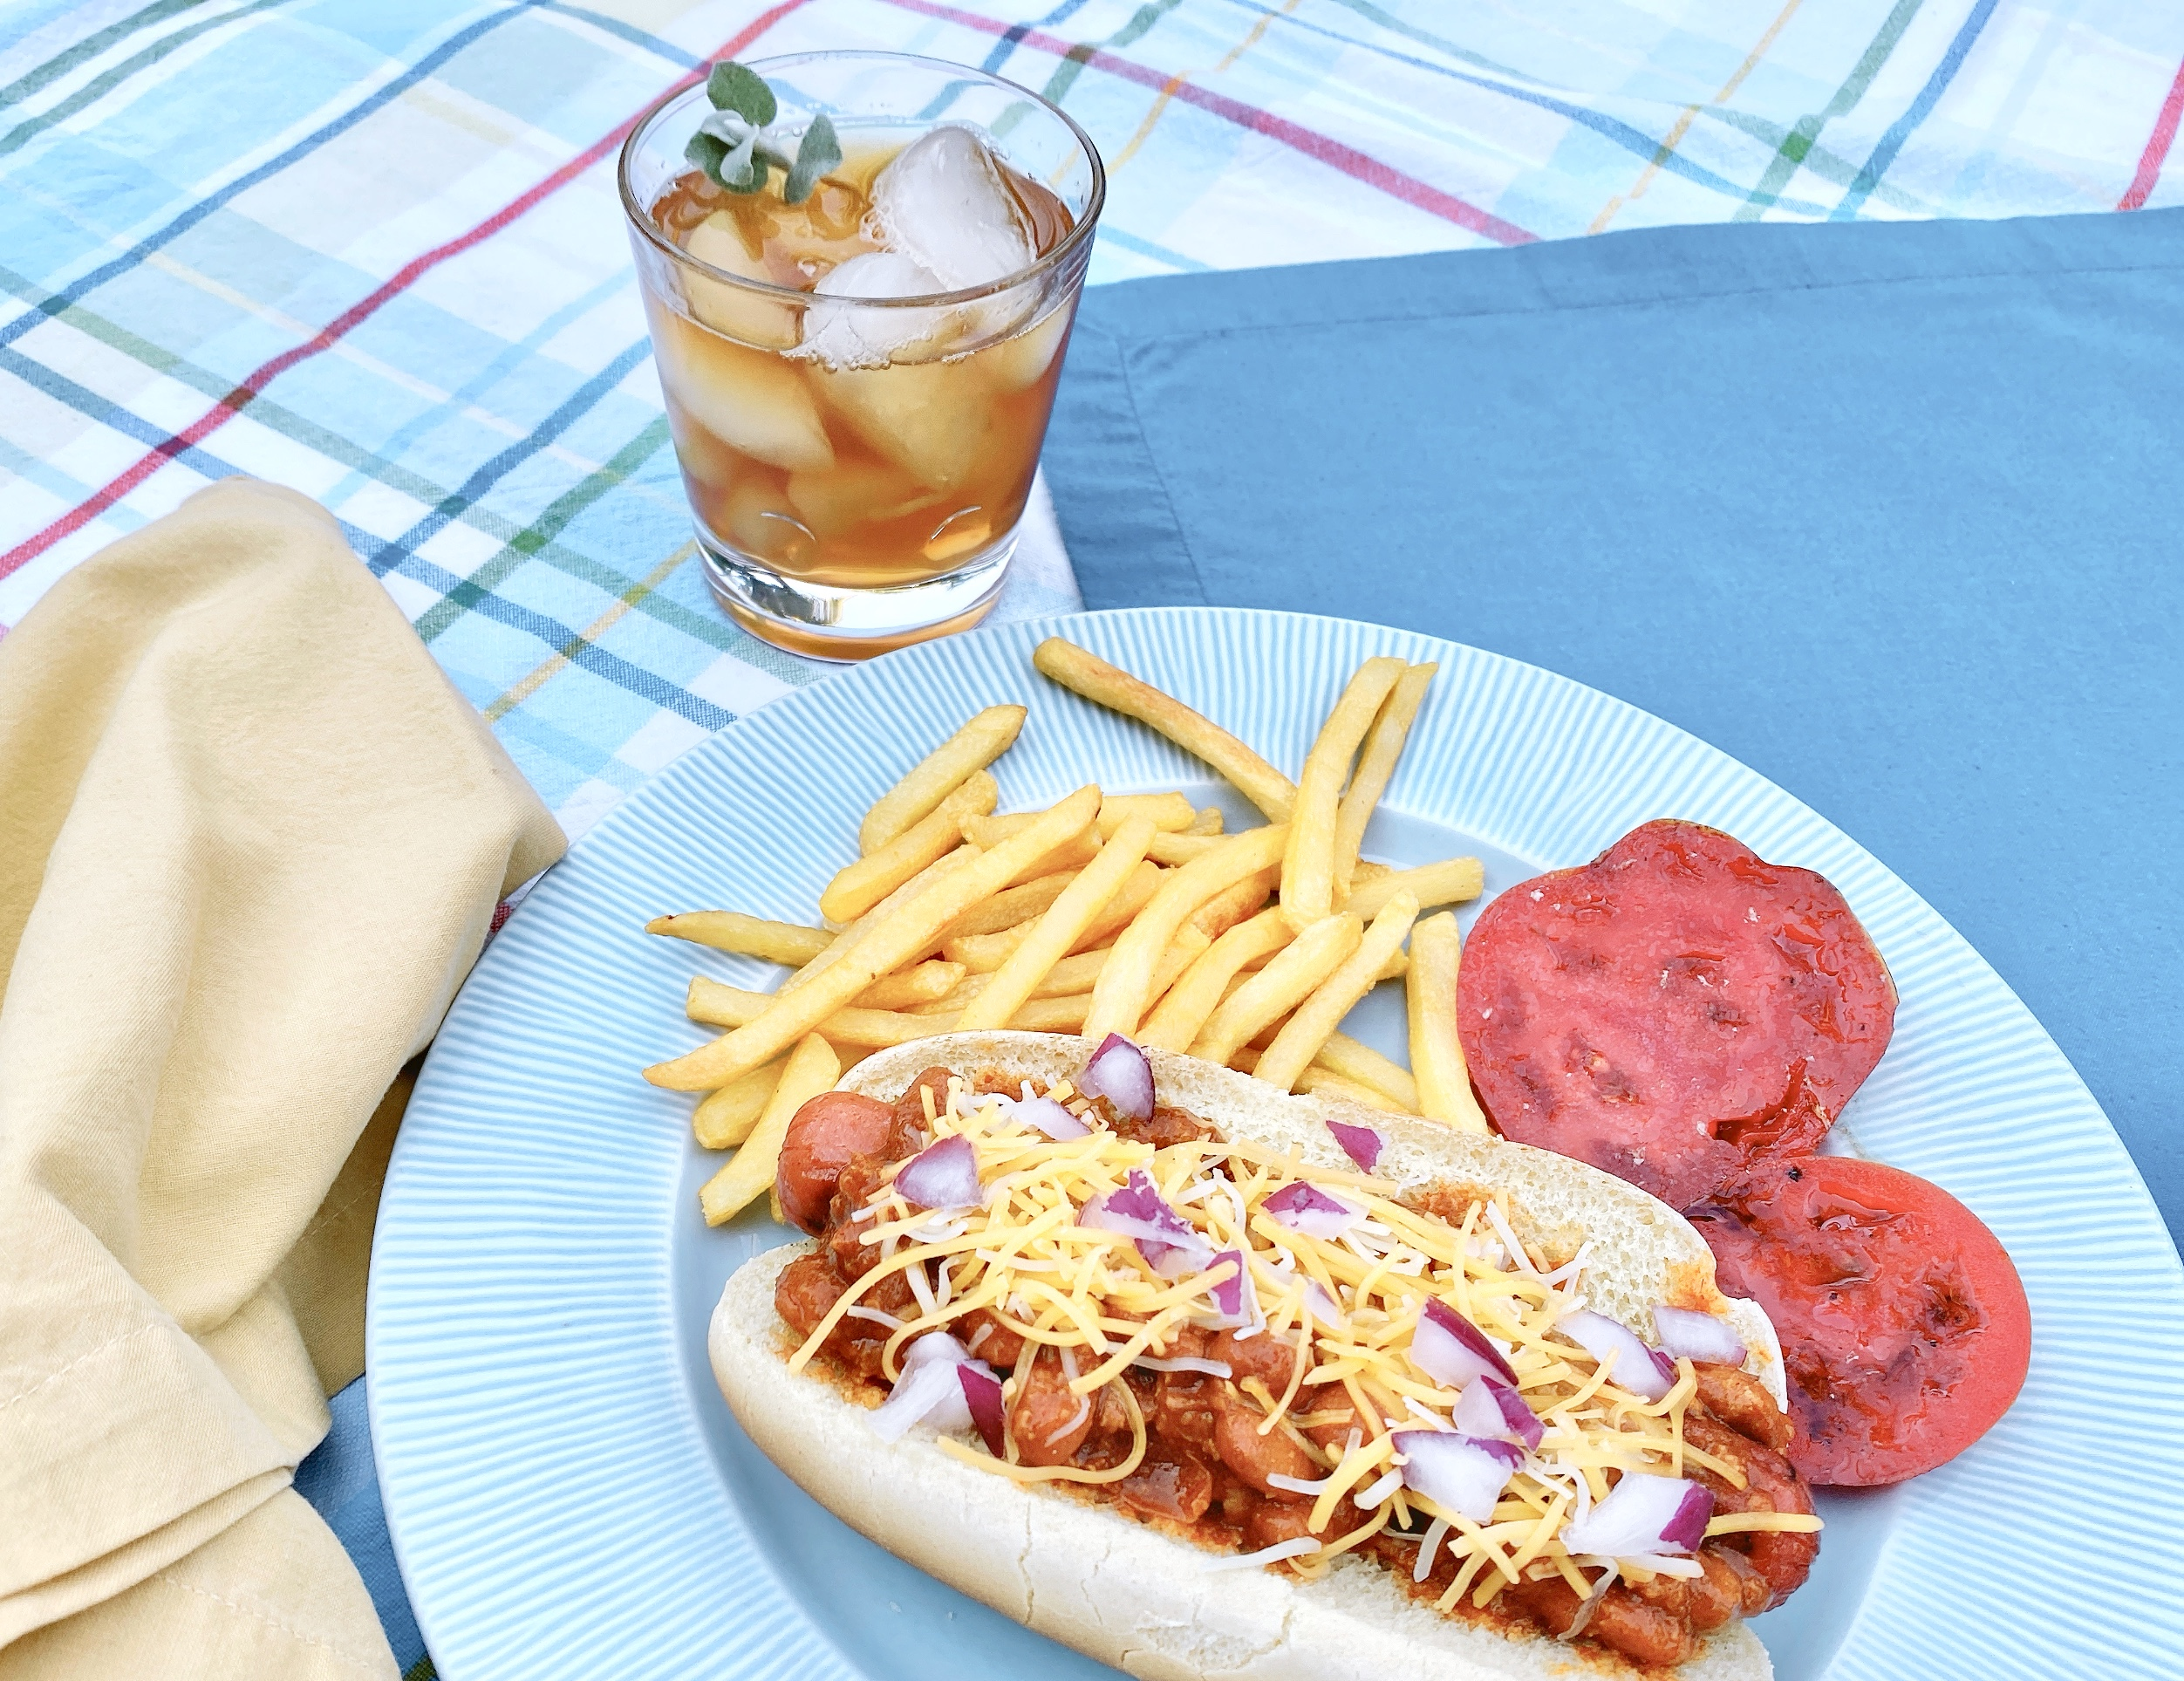 chili dog and fries served picnic style with colorful plaid tablecloth and iced tea